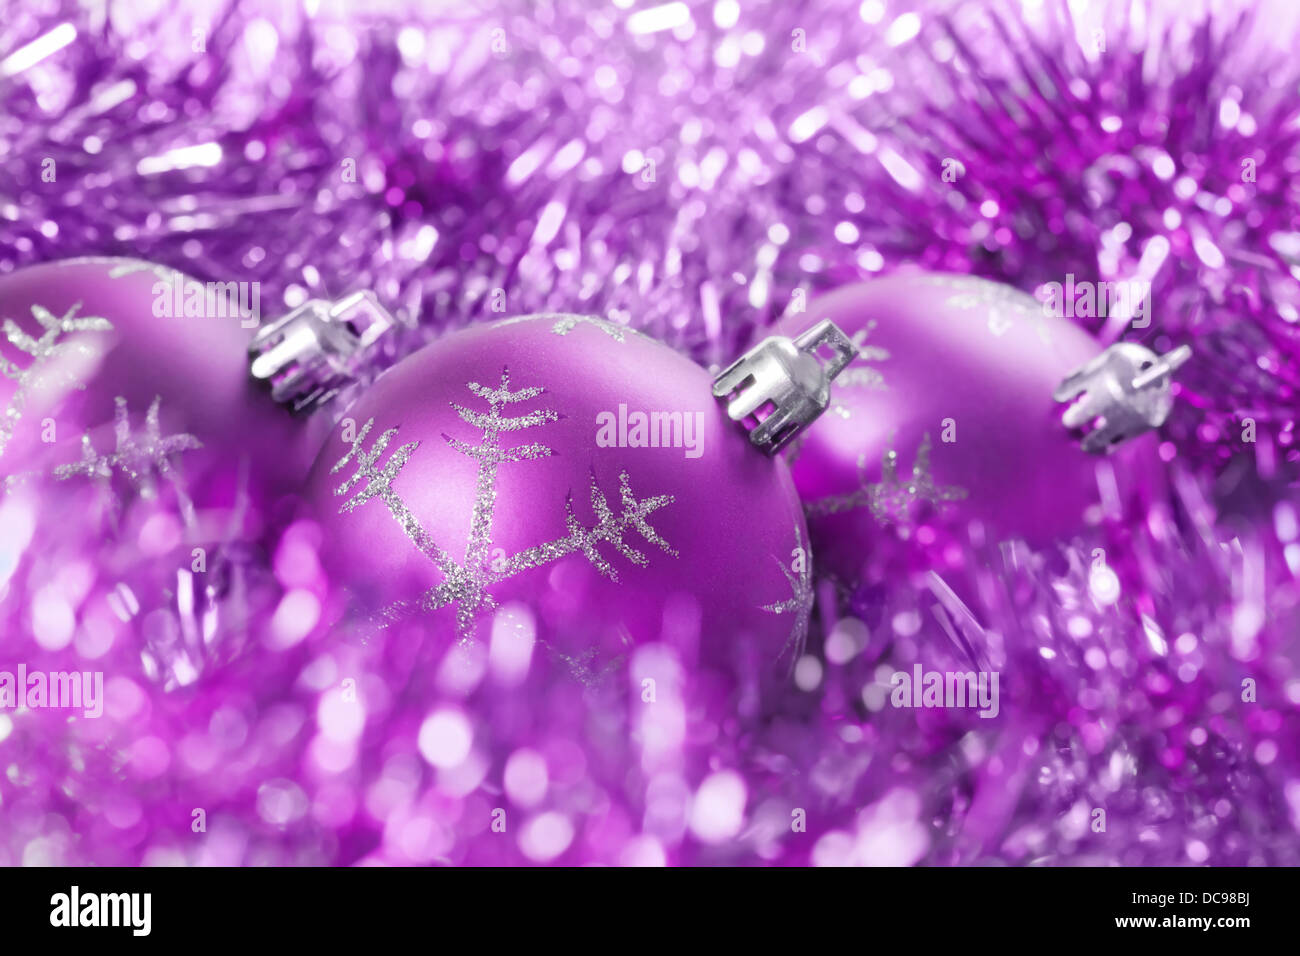 background from violet christmas balls with tinsel - Stock Image